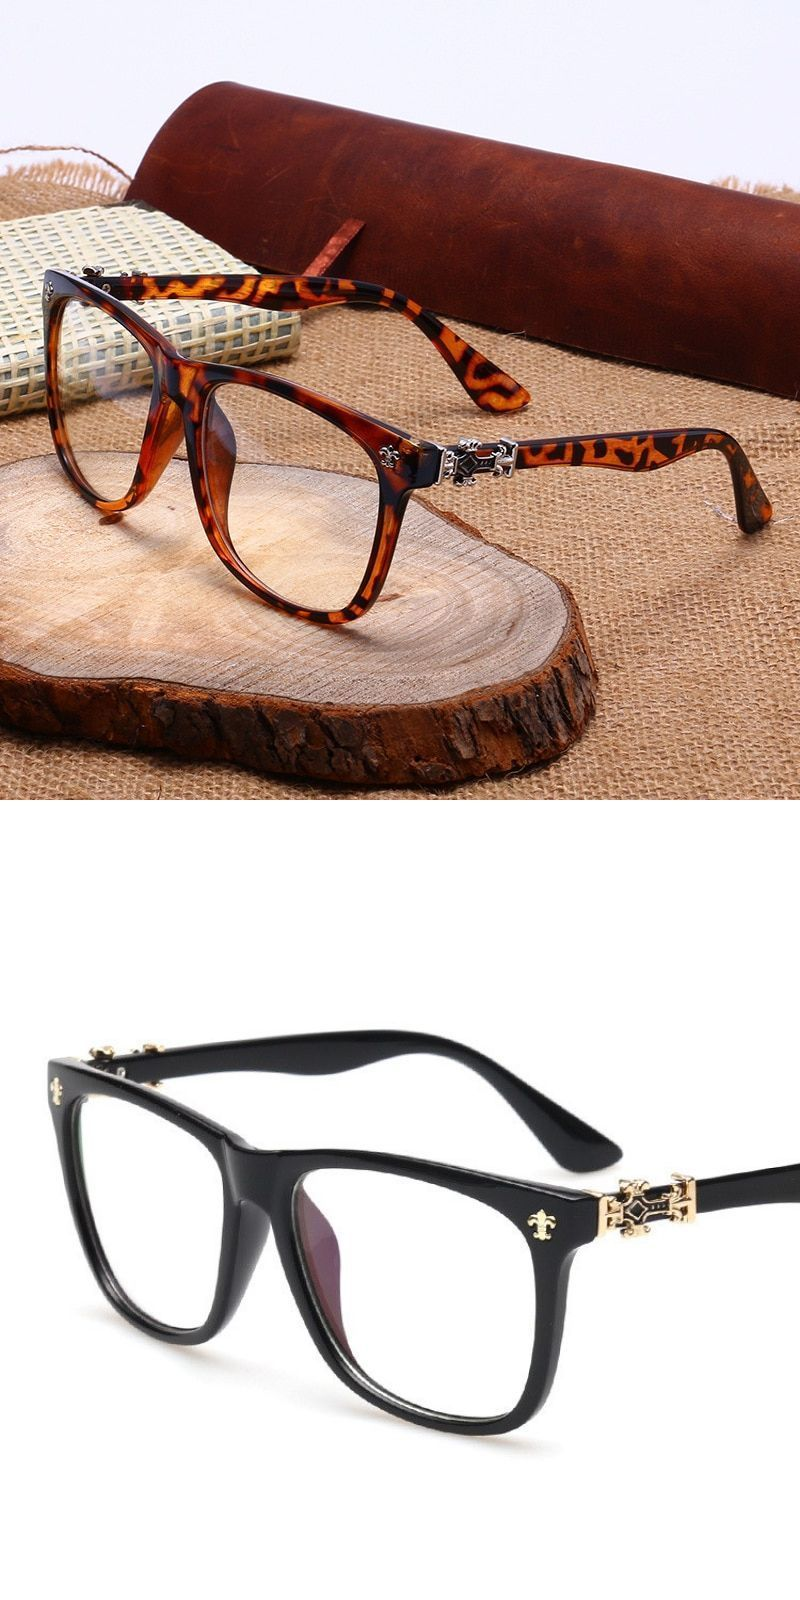 5c02e2ba48f Vintage eyeglass frames women men designer eyewear frame optical eye  glasses frame can match photochromic lenses